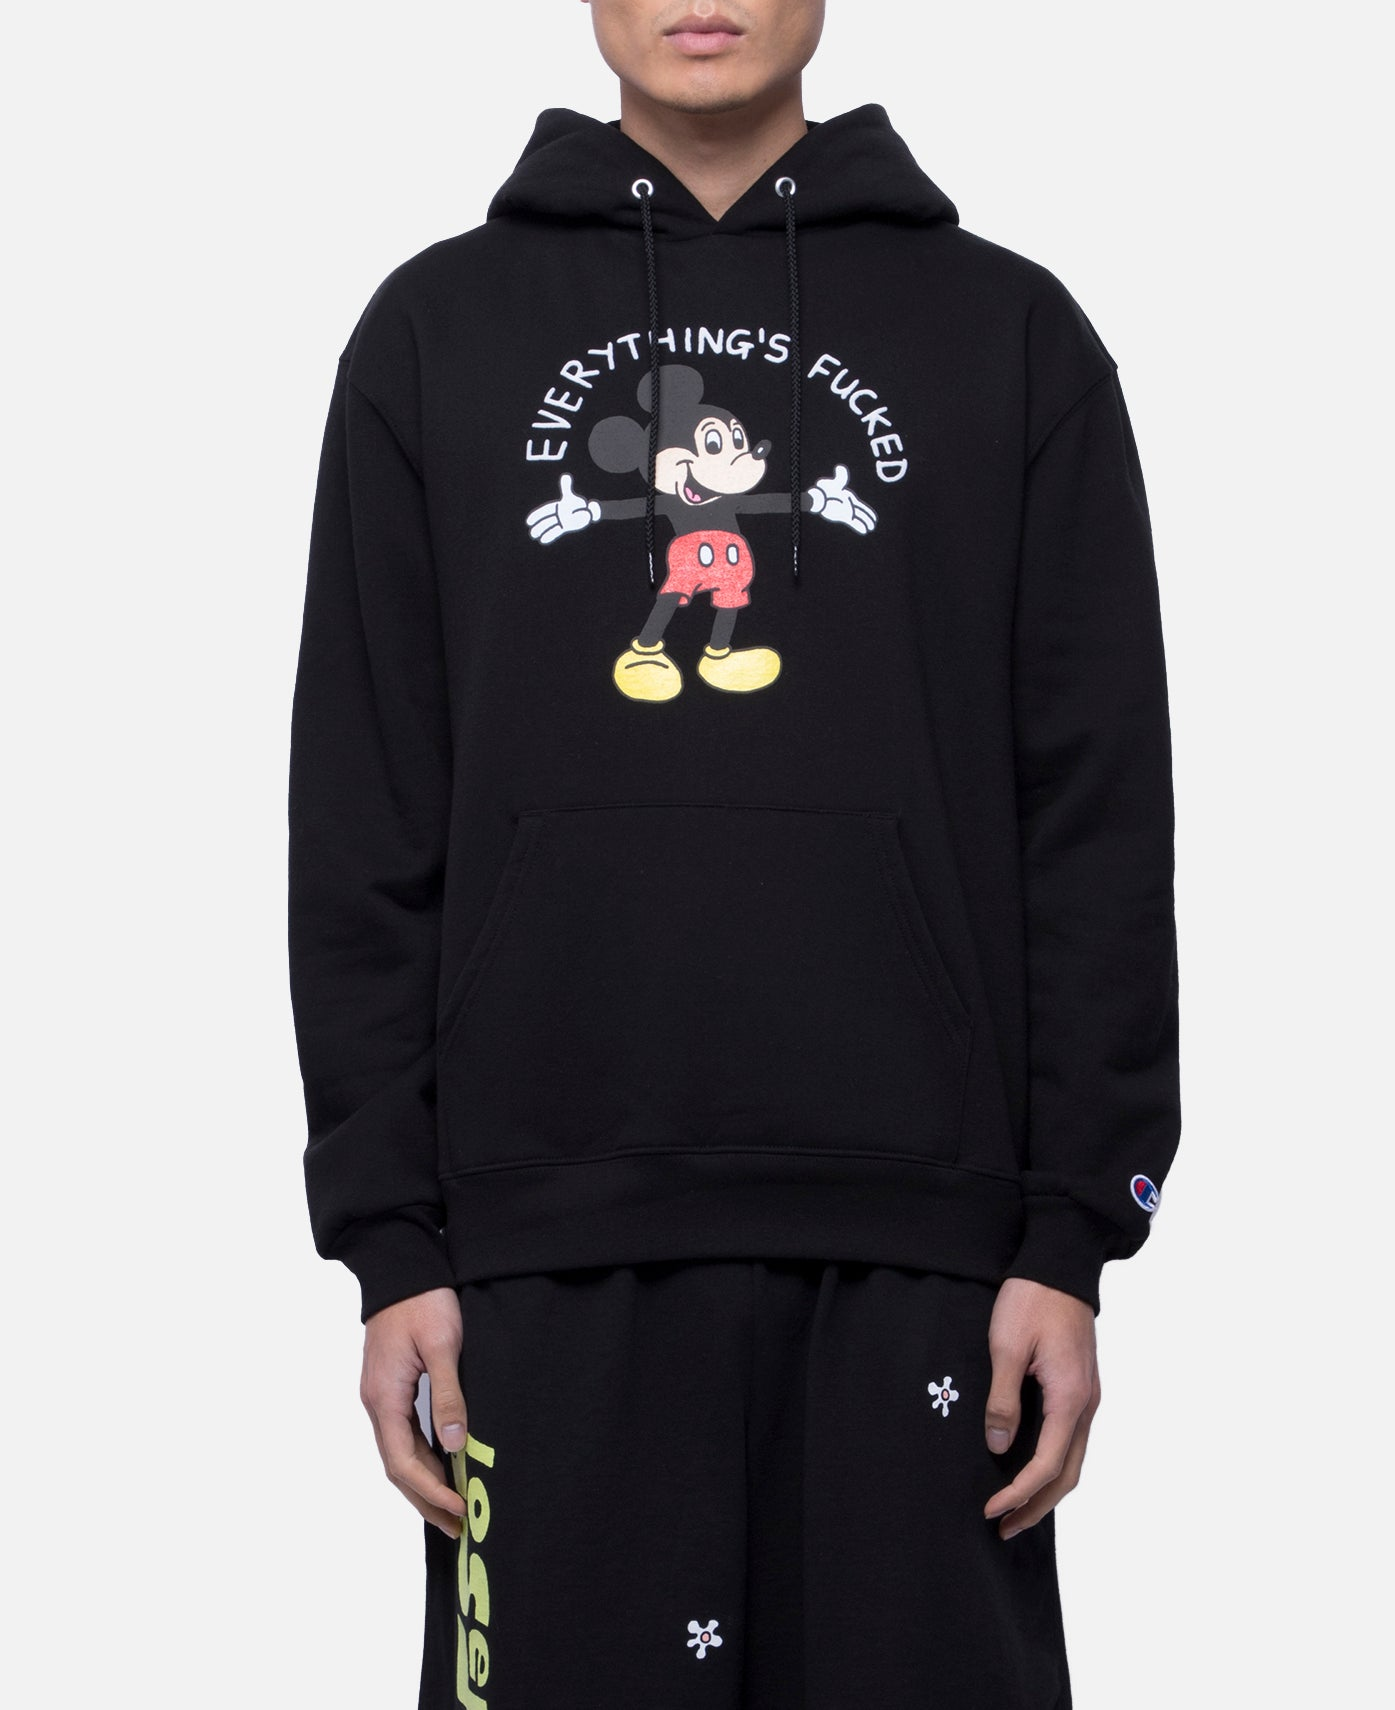 Everything's Fucked Hoodie